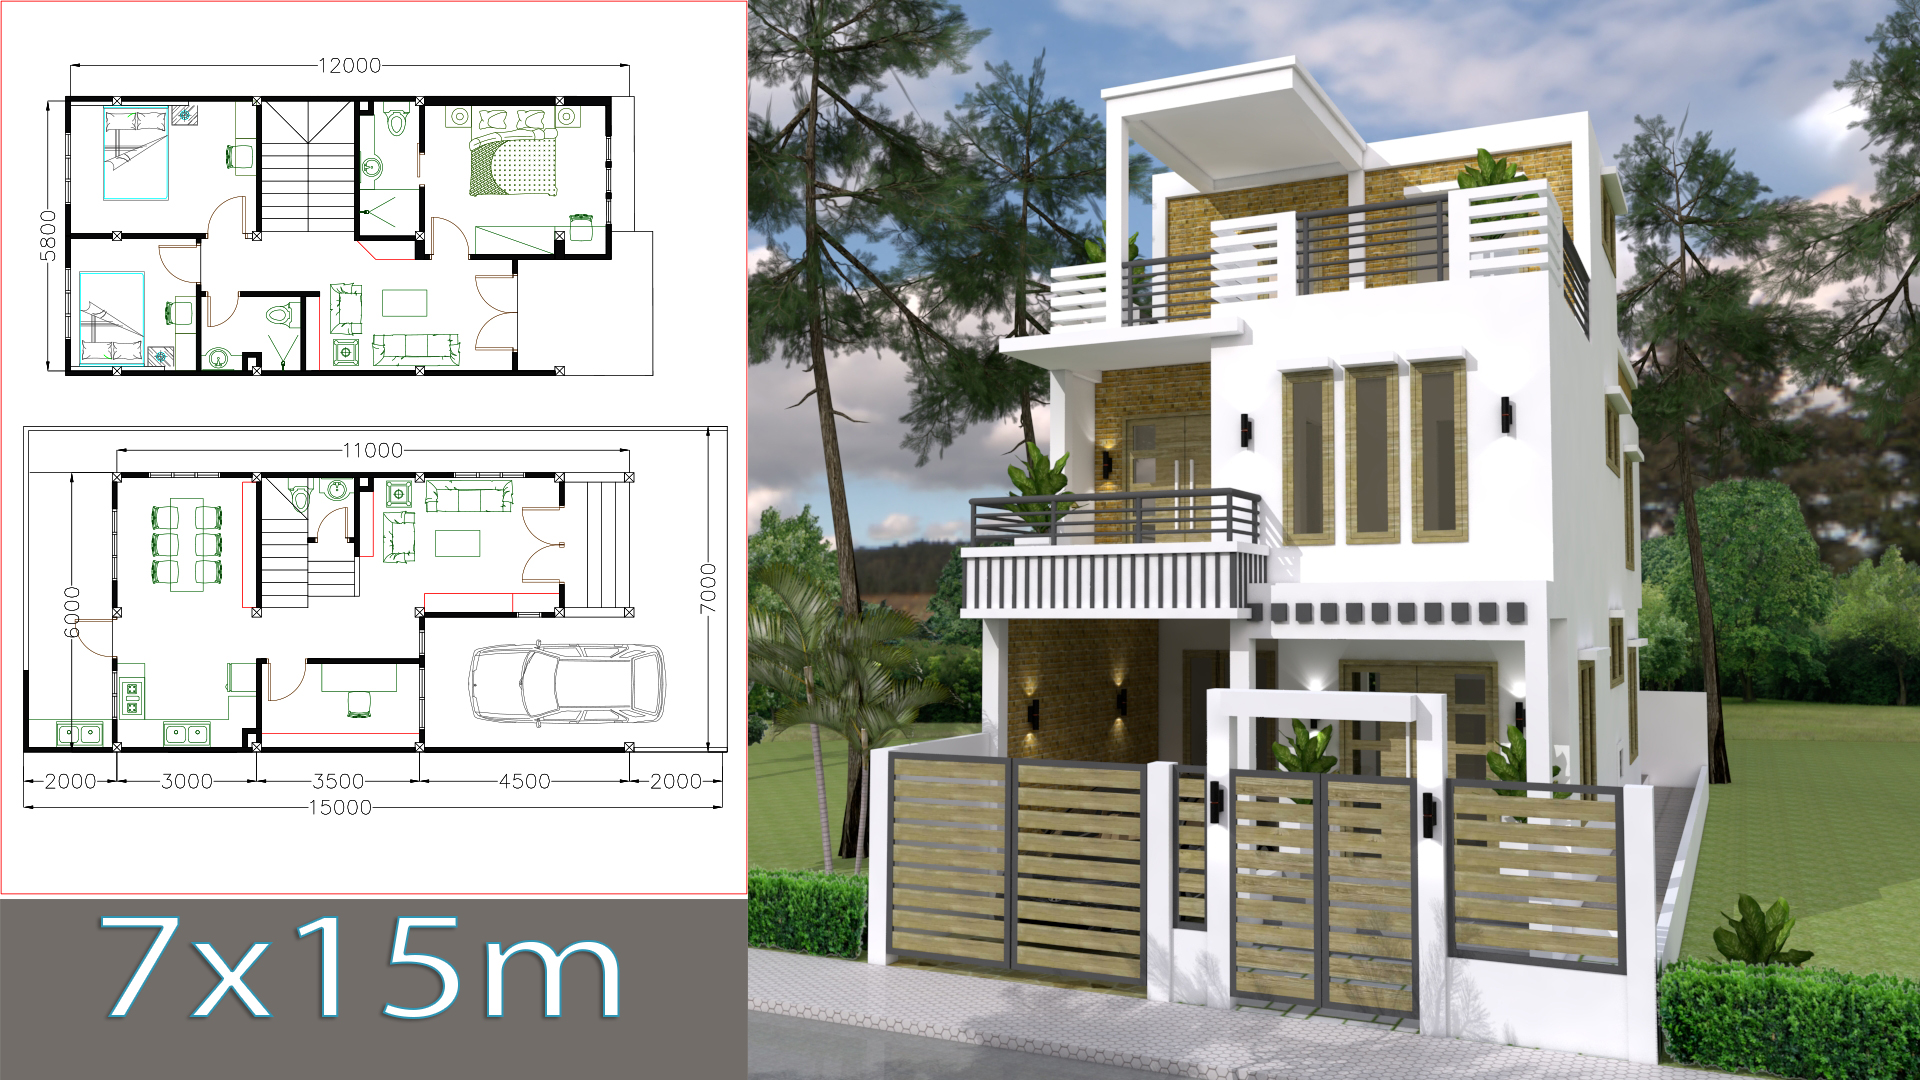 House Plans 7x15m with 3 Bedrooms - Sam House Plans